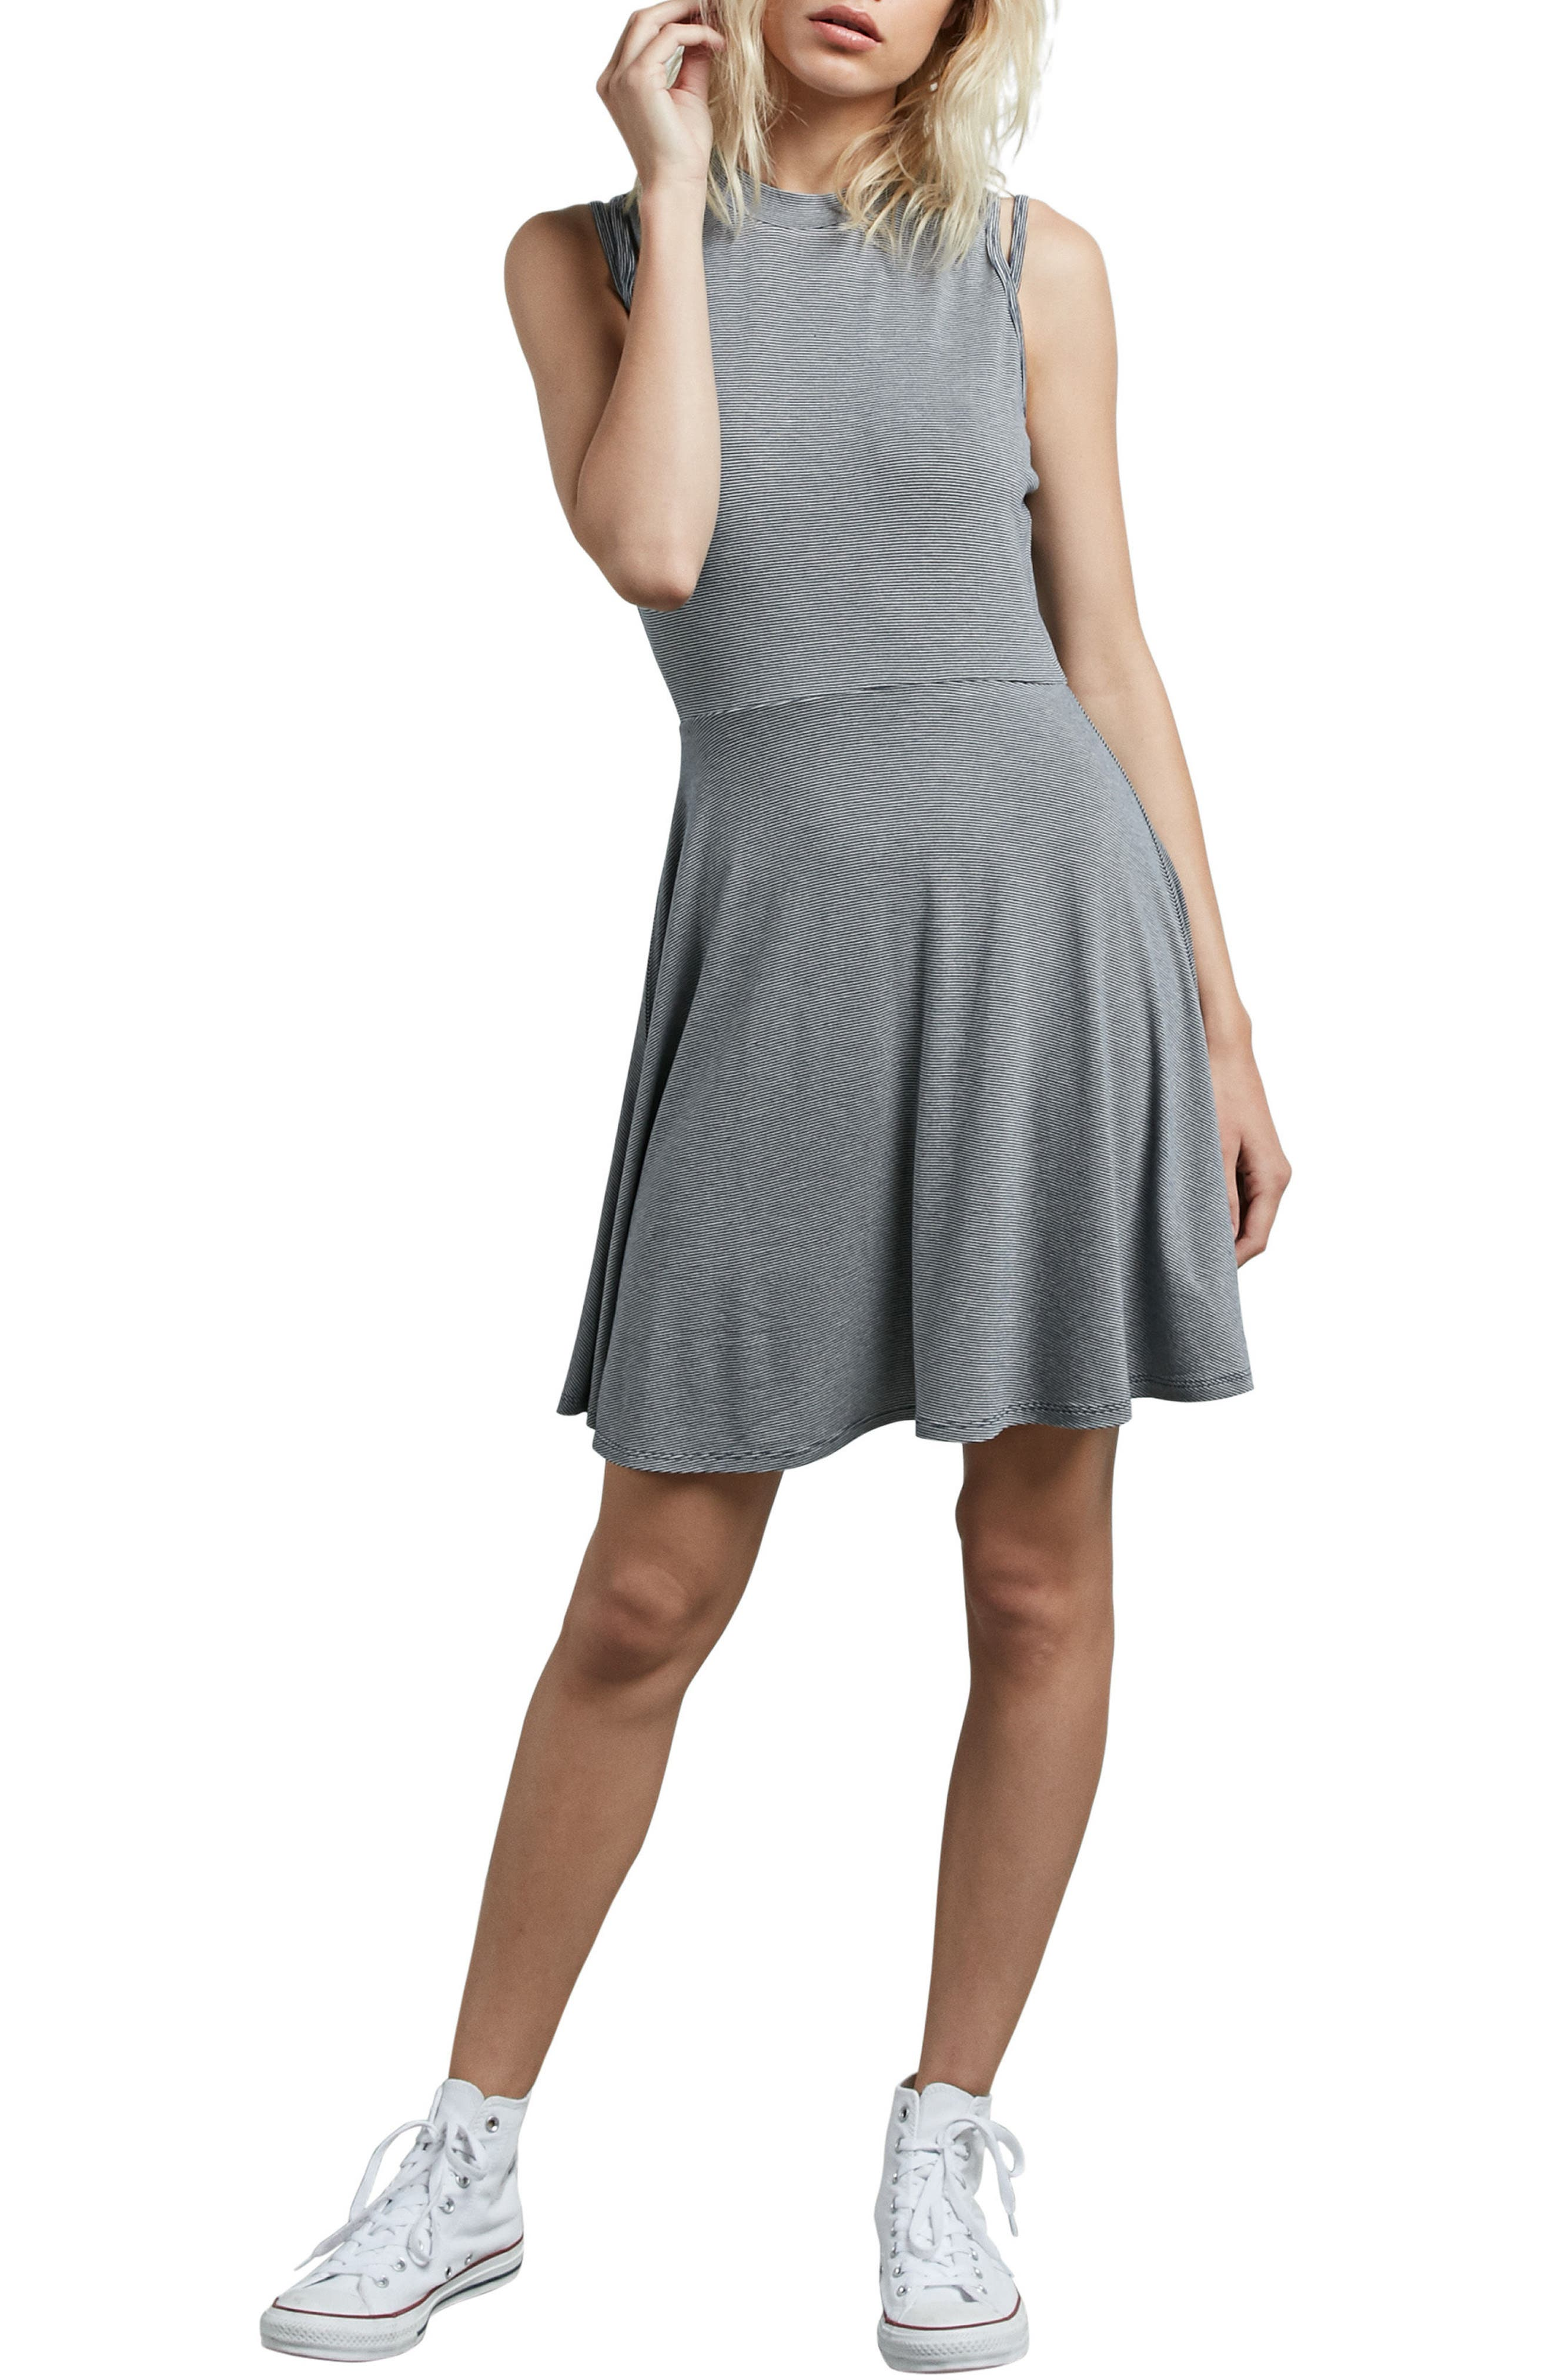 Open Arms Strappy Skater Dress,                             Main thumbnail 1, color,                             100